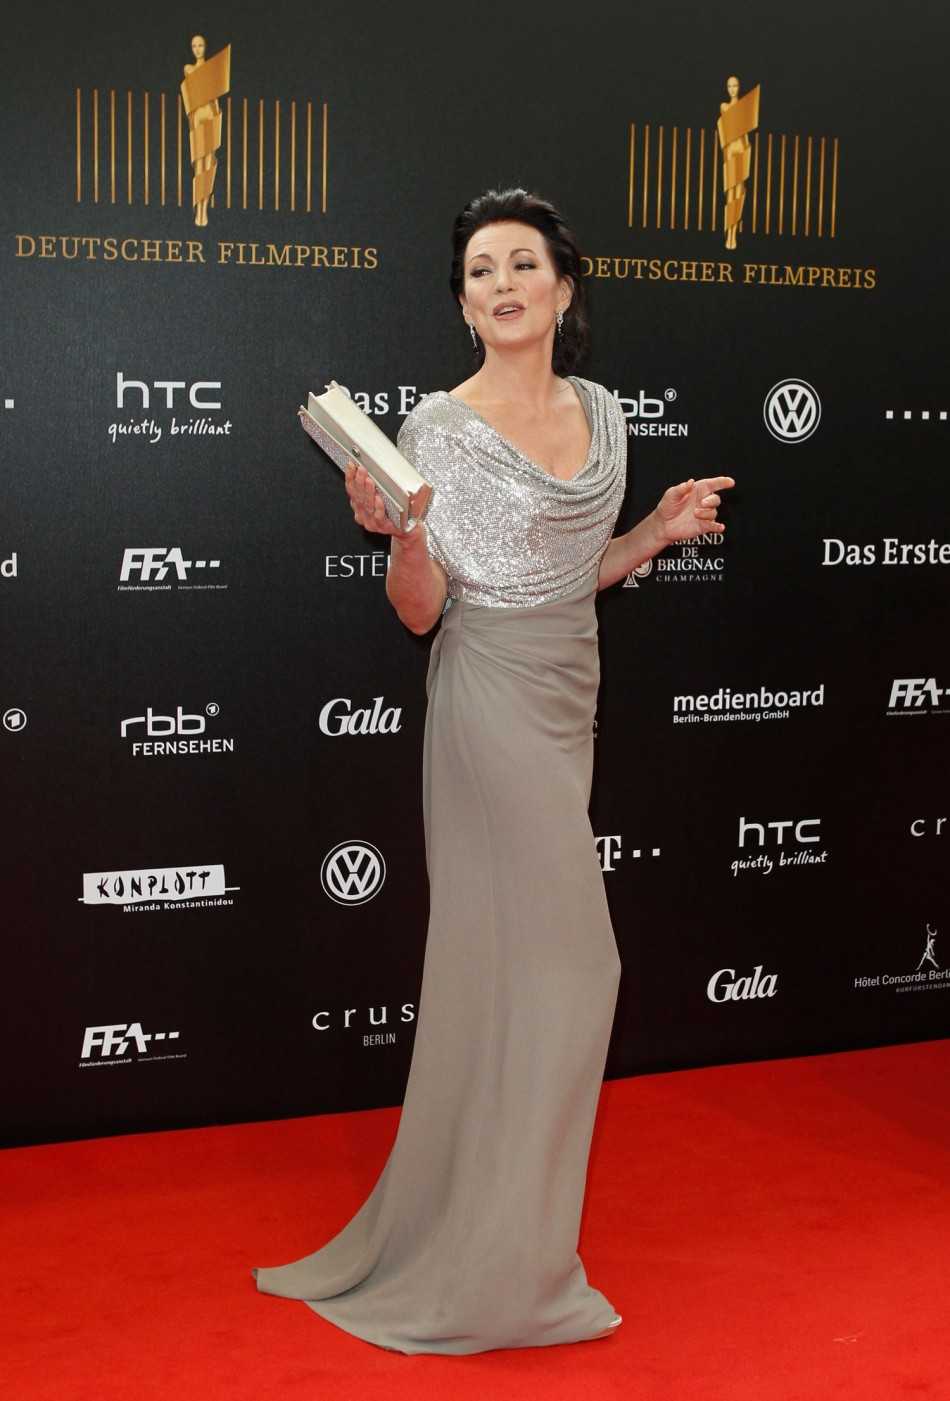 German Film Prize 'Lola' 2012: Most Stunning Red Carpet Beauties